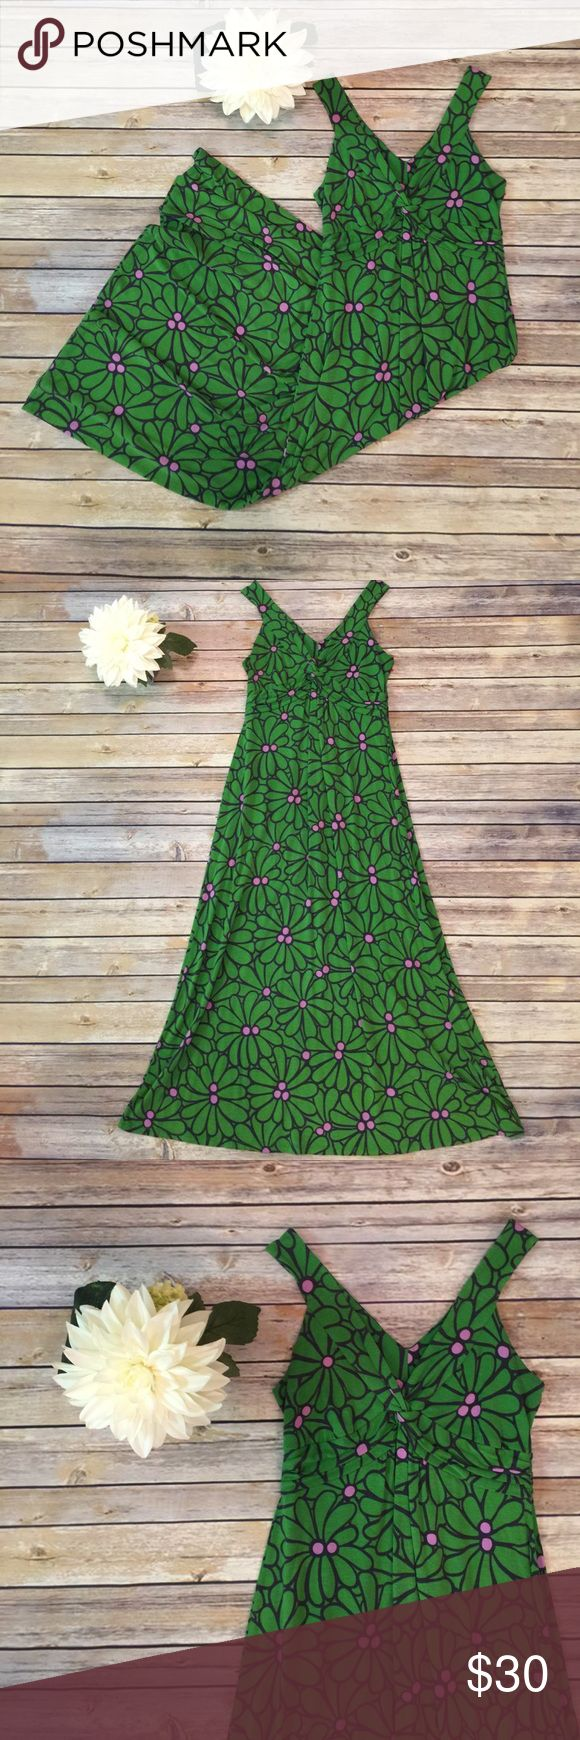 """Boden Green Petite Dress Boden Petite Green dress.  In great condition.  Has some minor piling.  Bust 32"""" Waist 28"""" Length 46"""".  Fits more like. 4/6. Boden Dresses"""